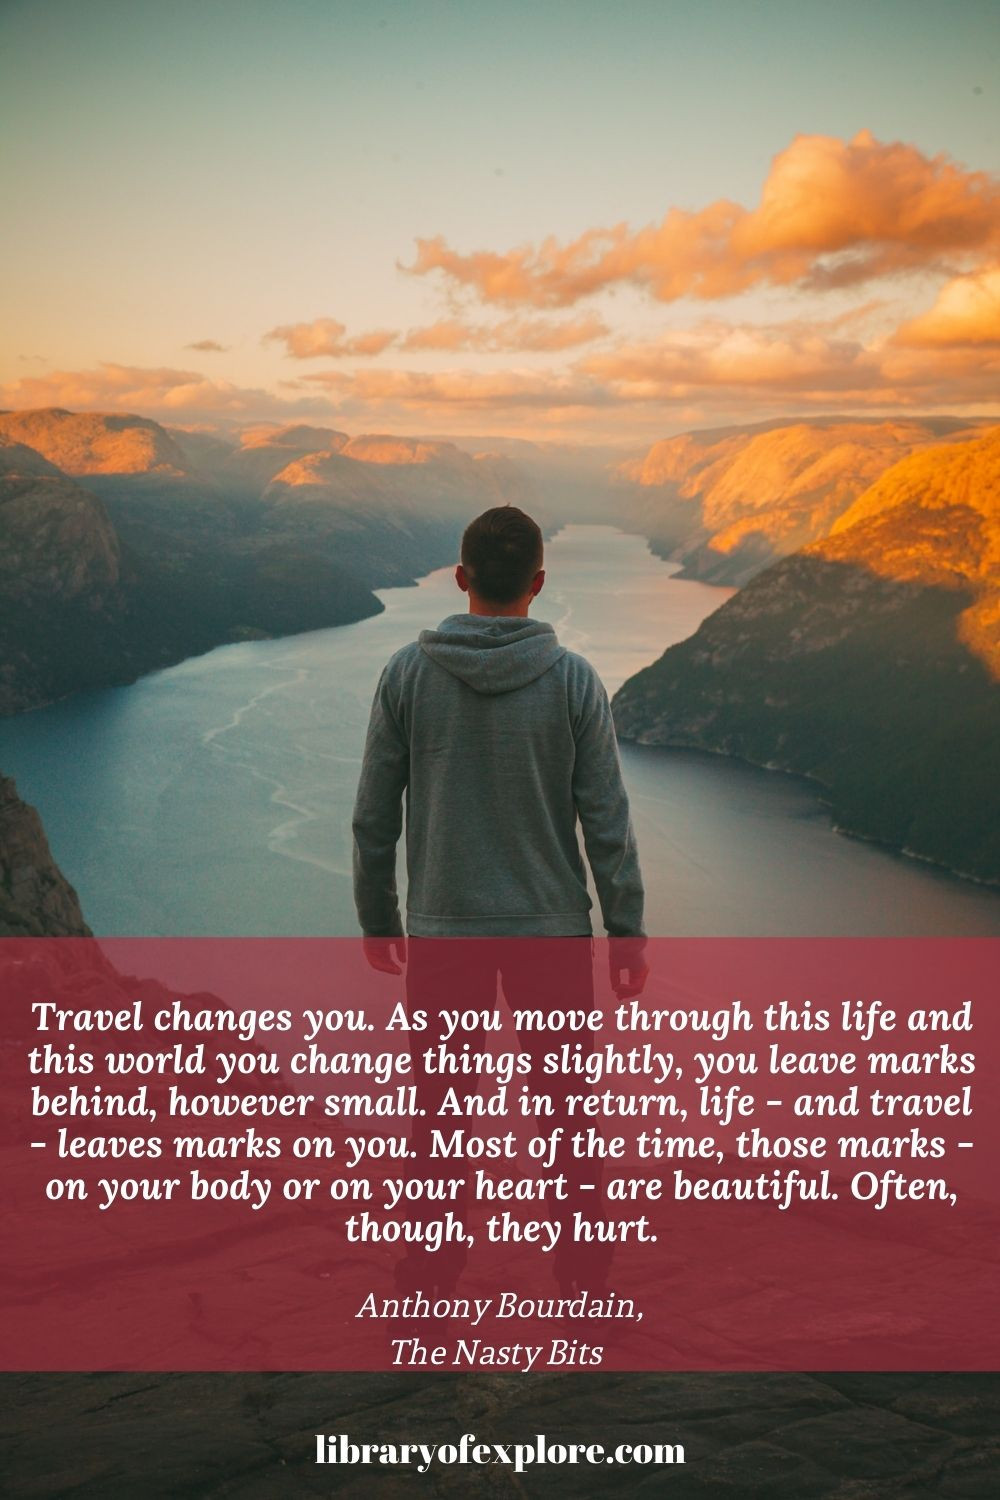 The Most Beautiful Travel Quotes From Famous People